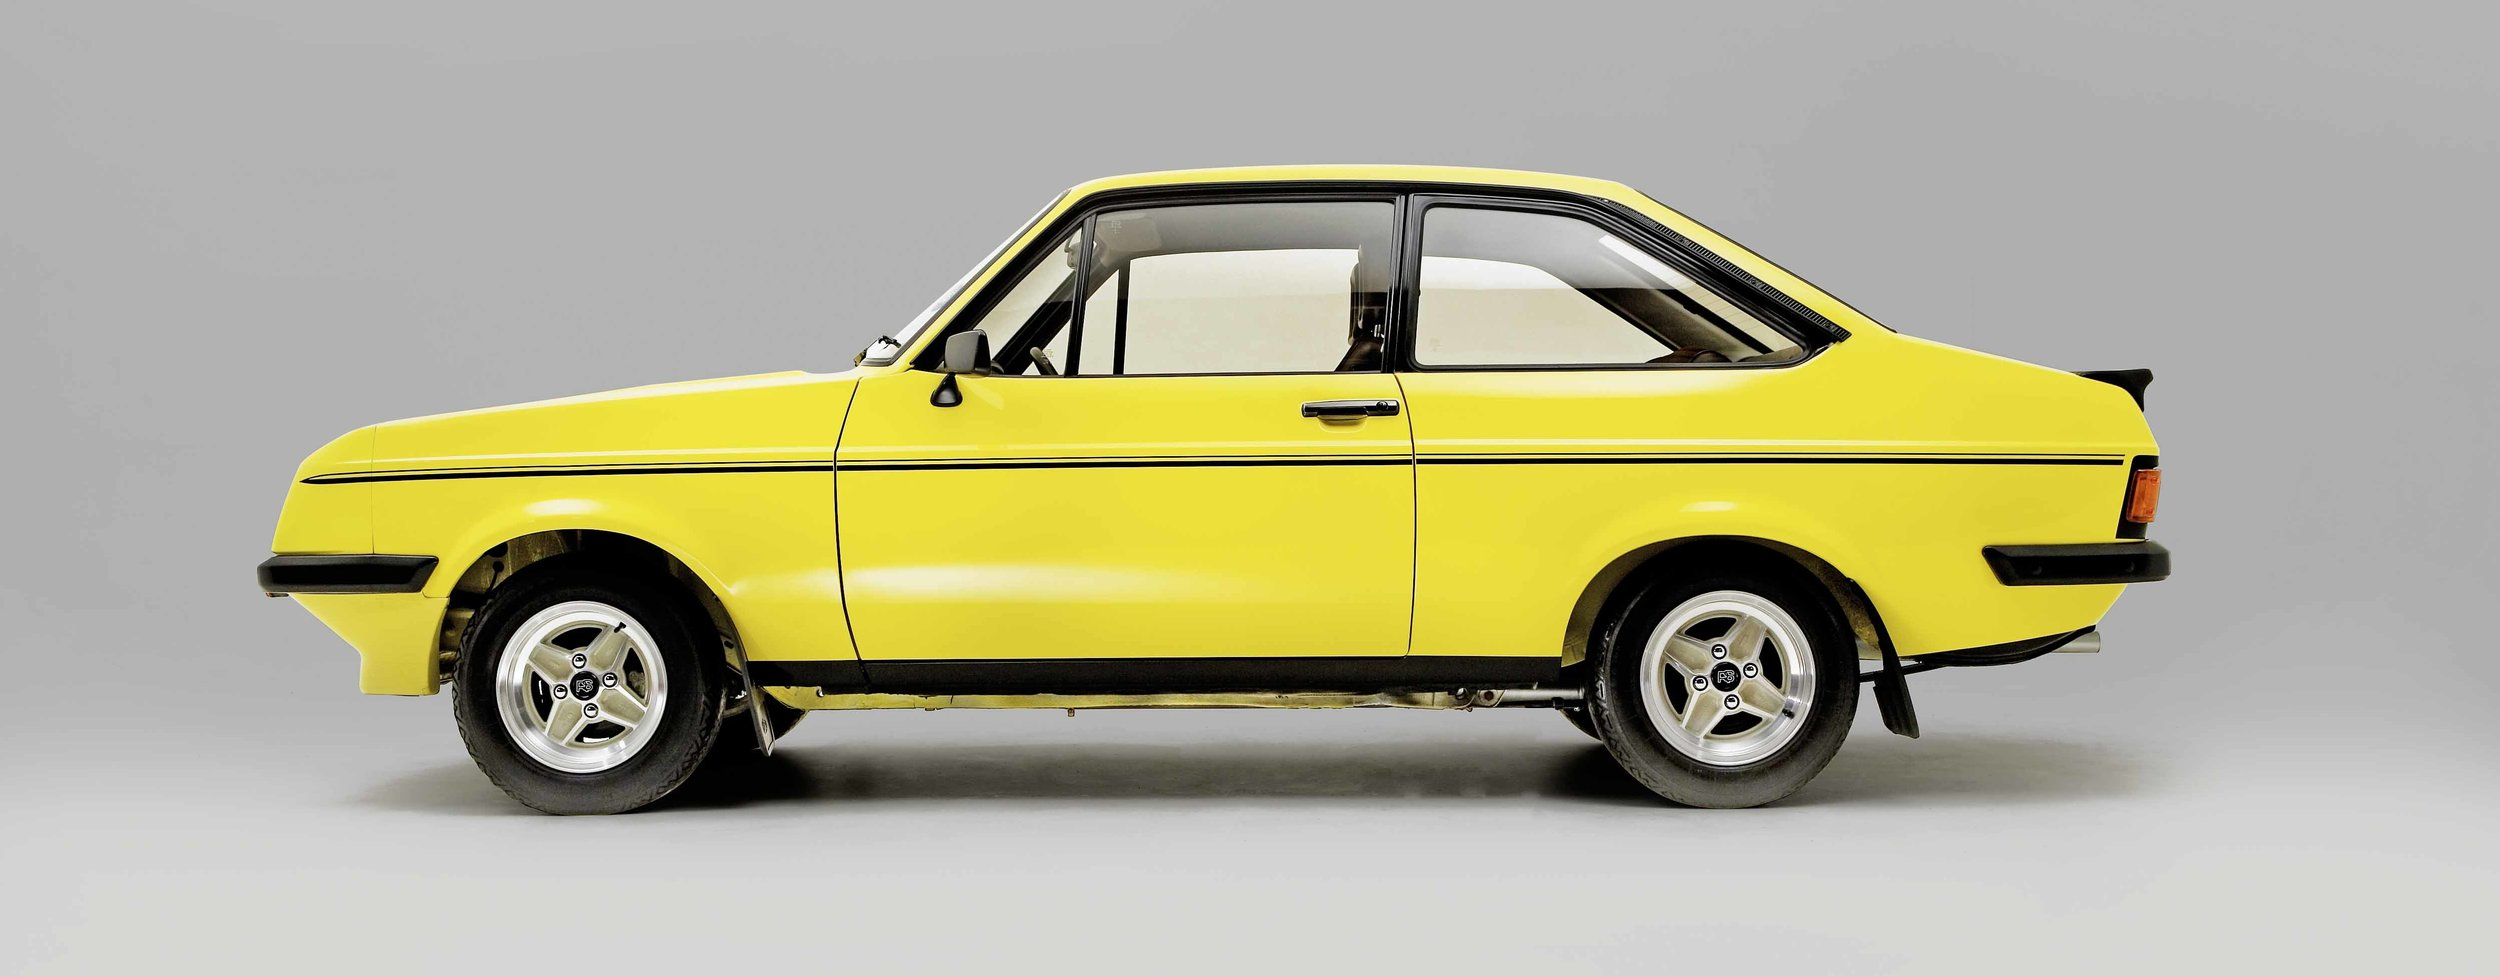 All you need to know when it comes to buying Ford's MkII Escort – detailed in the latest Practical Classics magazine.